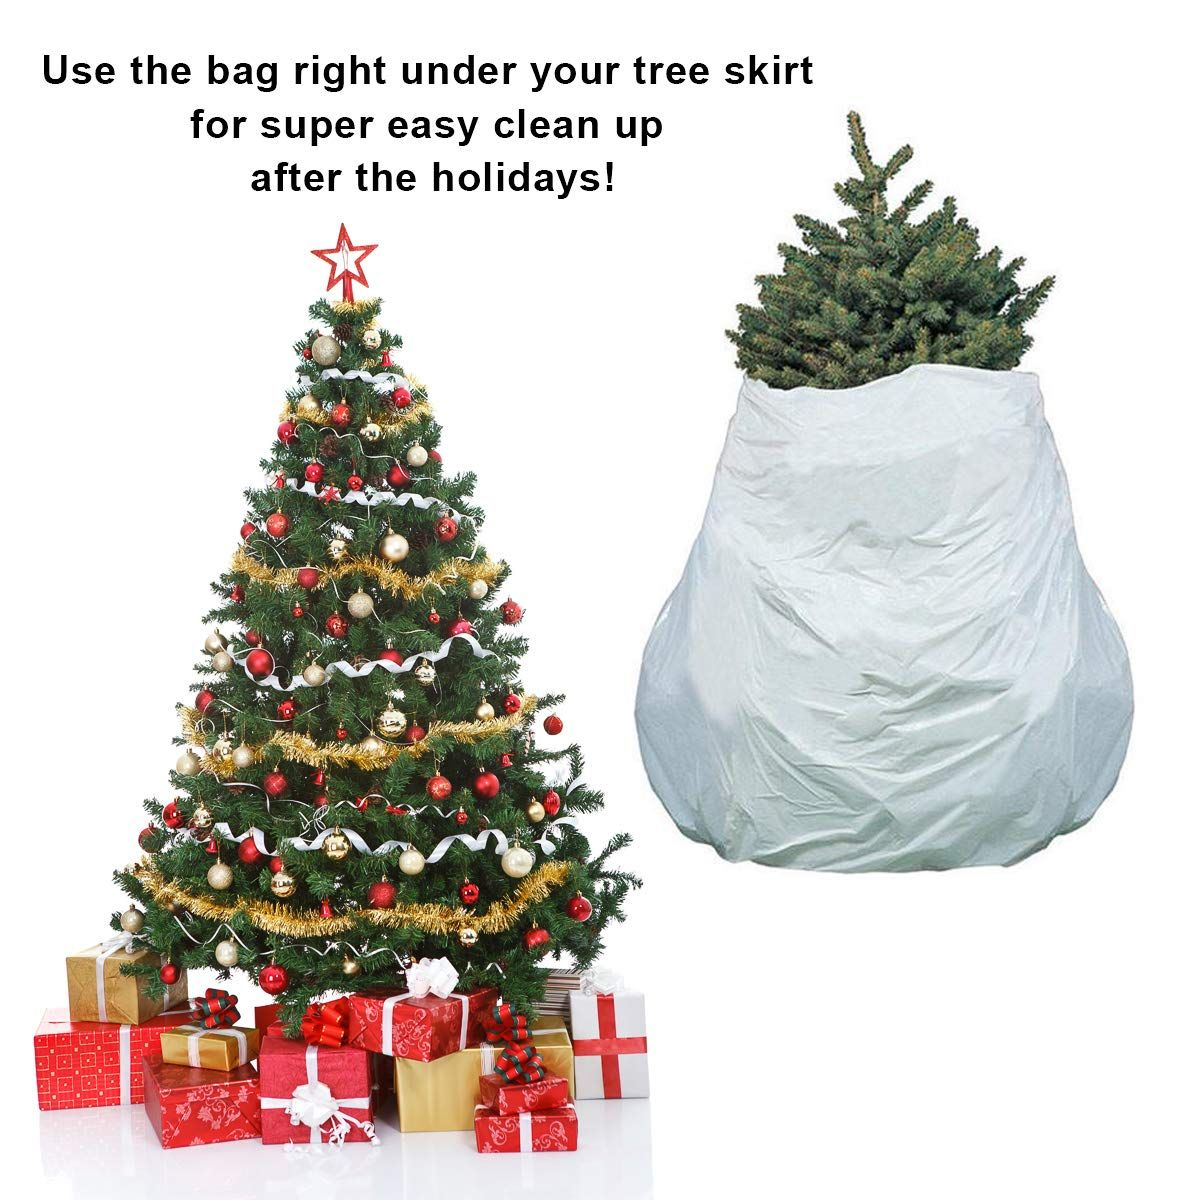 Pursell 2 Pack Christmas Tree Storage Removal Bag 2in1 Holiday Cleanup Recyclable Biodegradabl Christmas Tree Storage Christmas Tree Storage Bag Christmas Tree